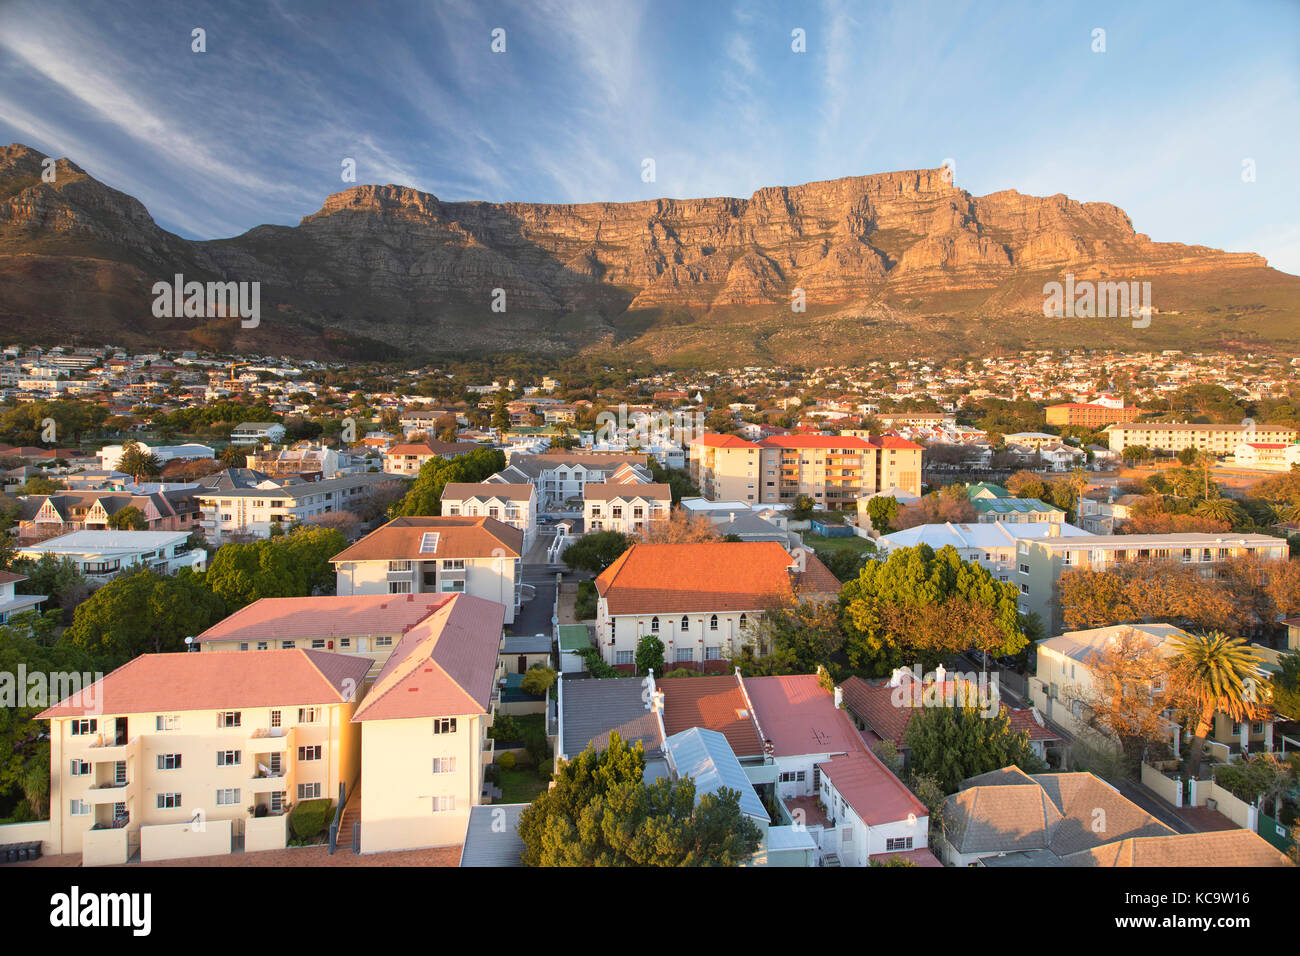 View of Table Mountain, Cape Town, Western Cape, South Africa - Stock Image